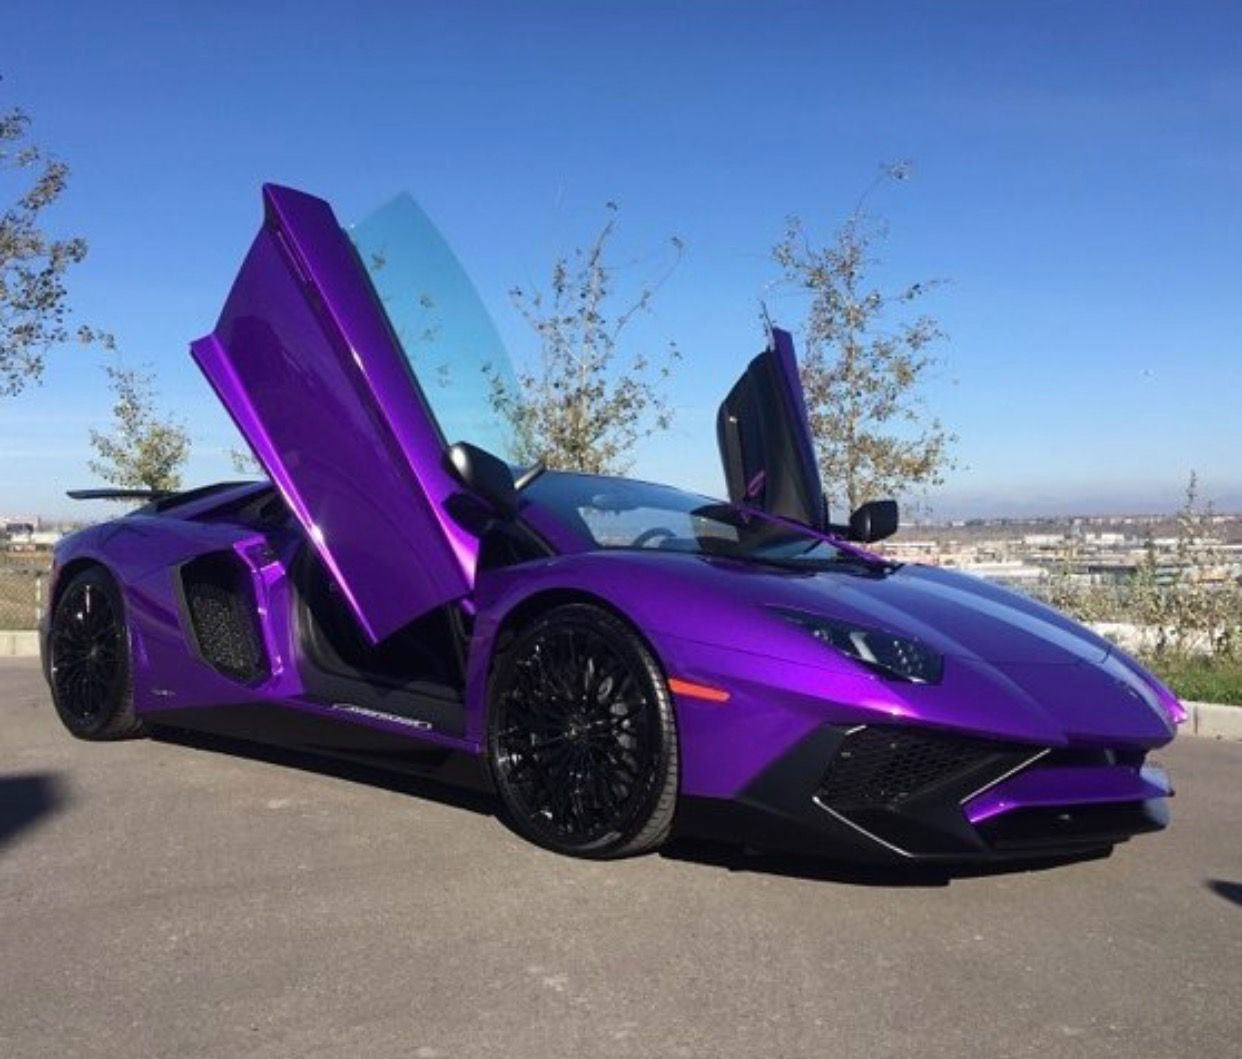 Lamborghini Aventador Super Veloce Coupe Painted In Viola Parsifae Photo Taken By Rleddy13 On Instagram Lambo Greg Is The Owner Of Car